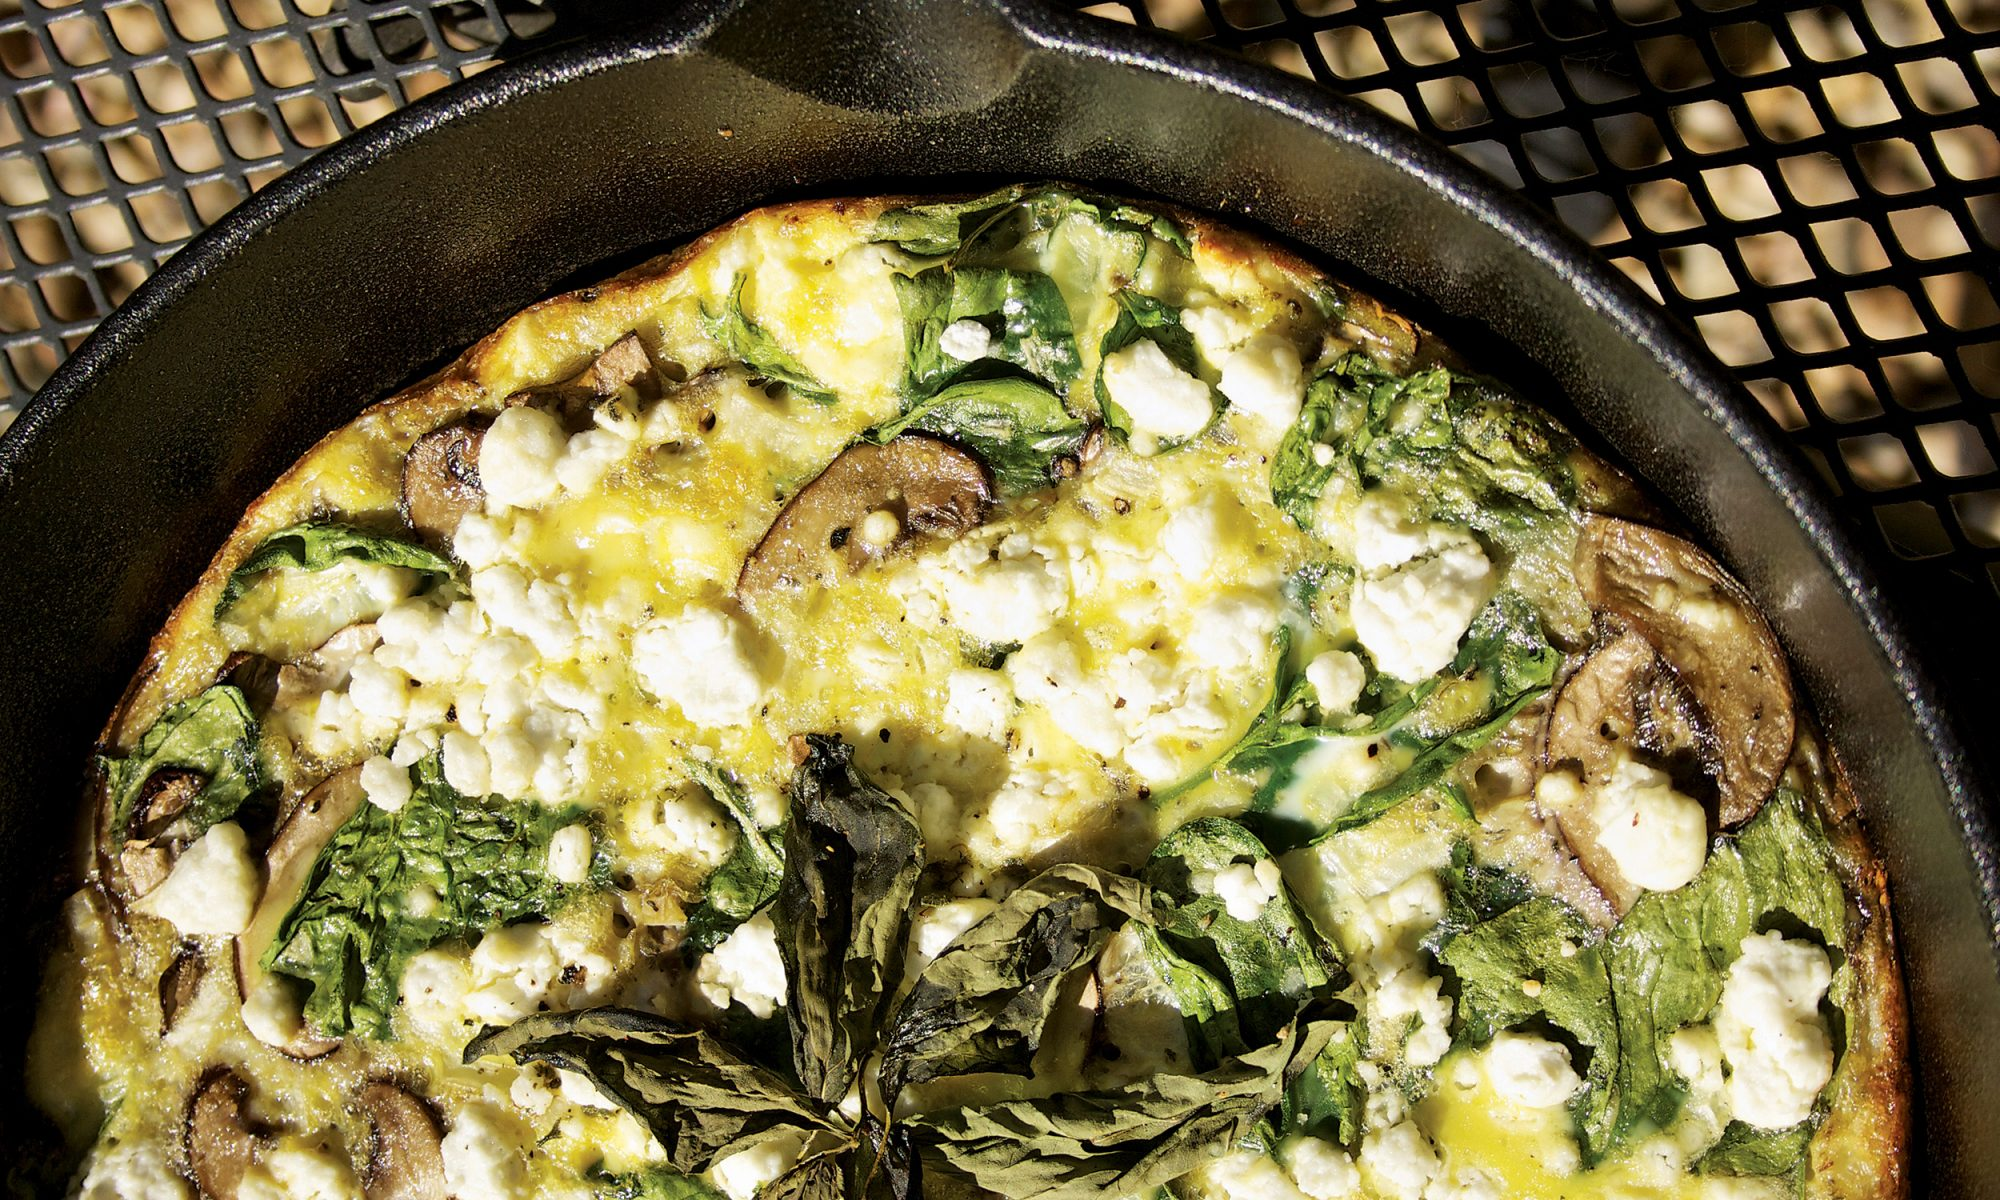 EC: This Cheesy Cannabis Frittata Is Totally Dope